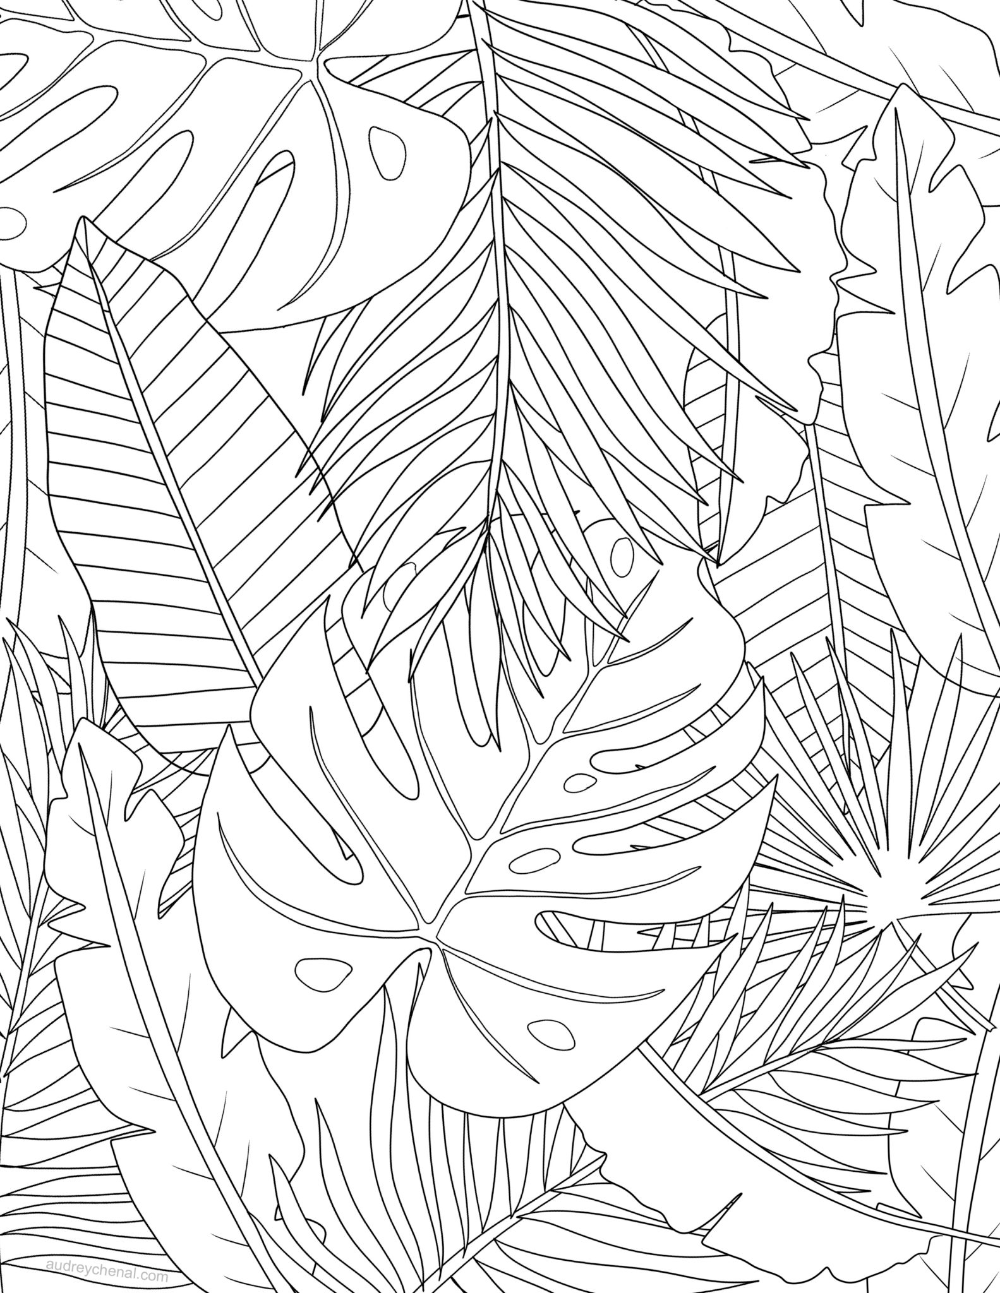 Tropical Leaves Coloring Page Audrey Chenal Tropical Painting Leaf Coloring Page Line Art Drawings